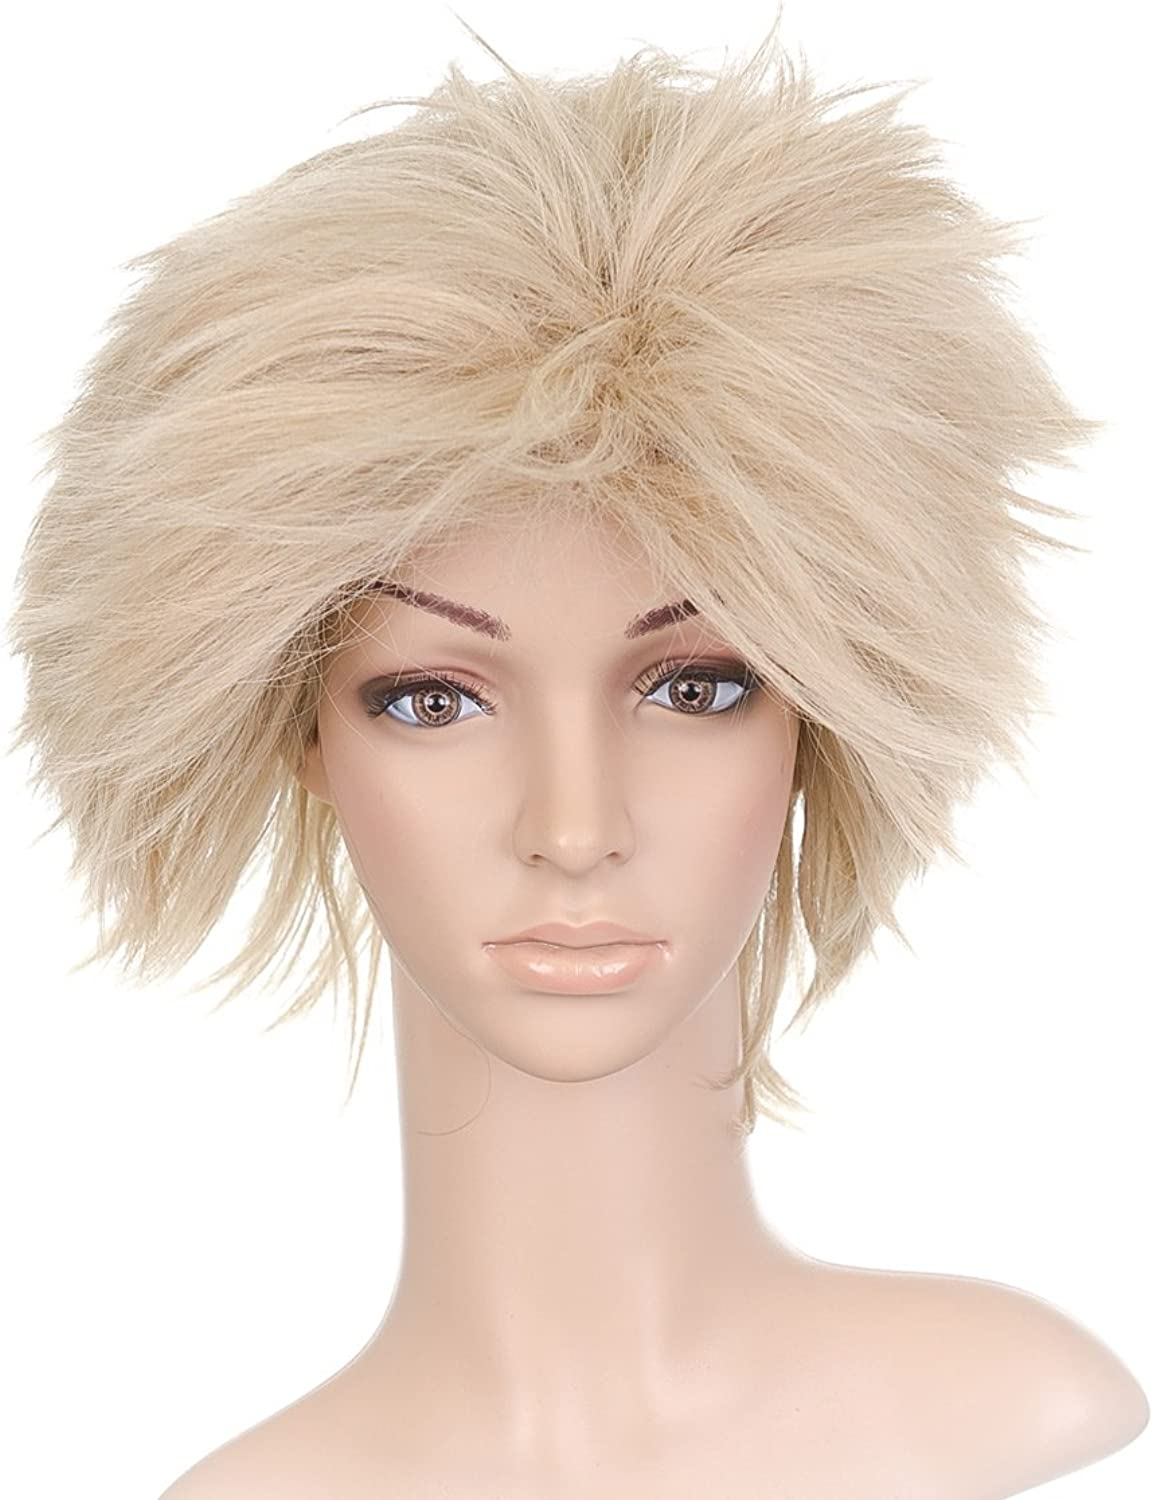 Light Blonde Windblown Styled Short Length Anime Cosplay Costume Wig B0089TRVEW Flagship-Store   | Online Shop Europe